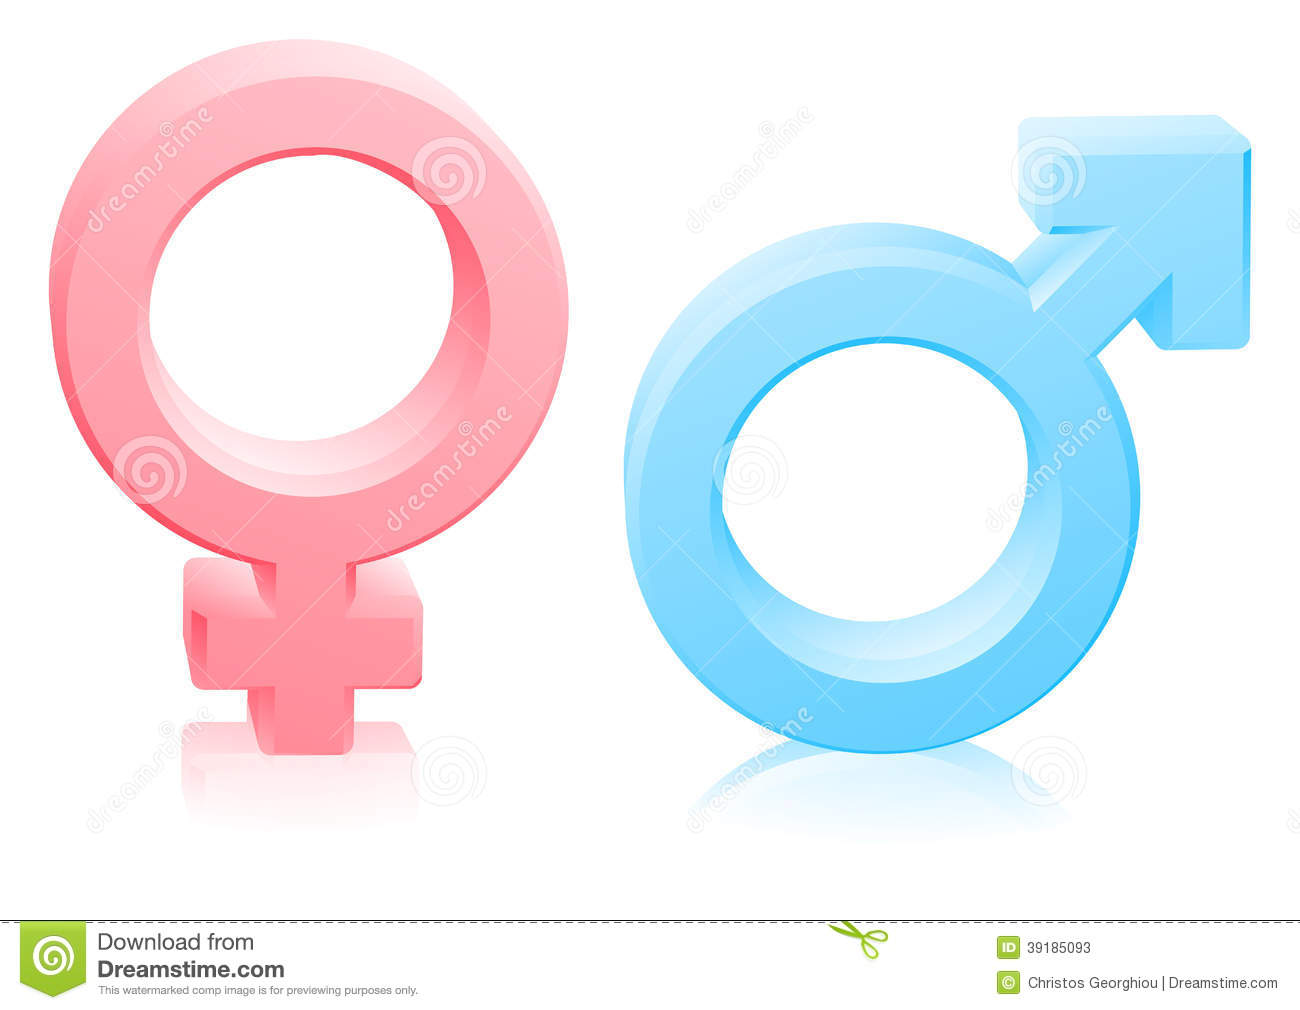 Man and woman, male and female gender sexes signs or symbols in pink ... Superhero Flying Vector